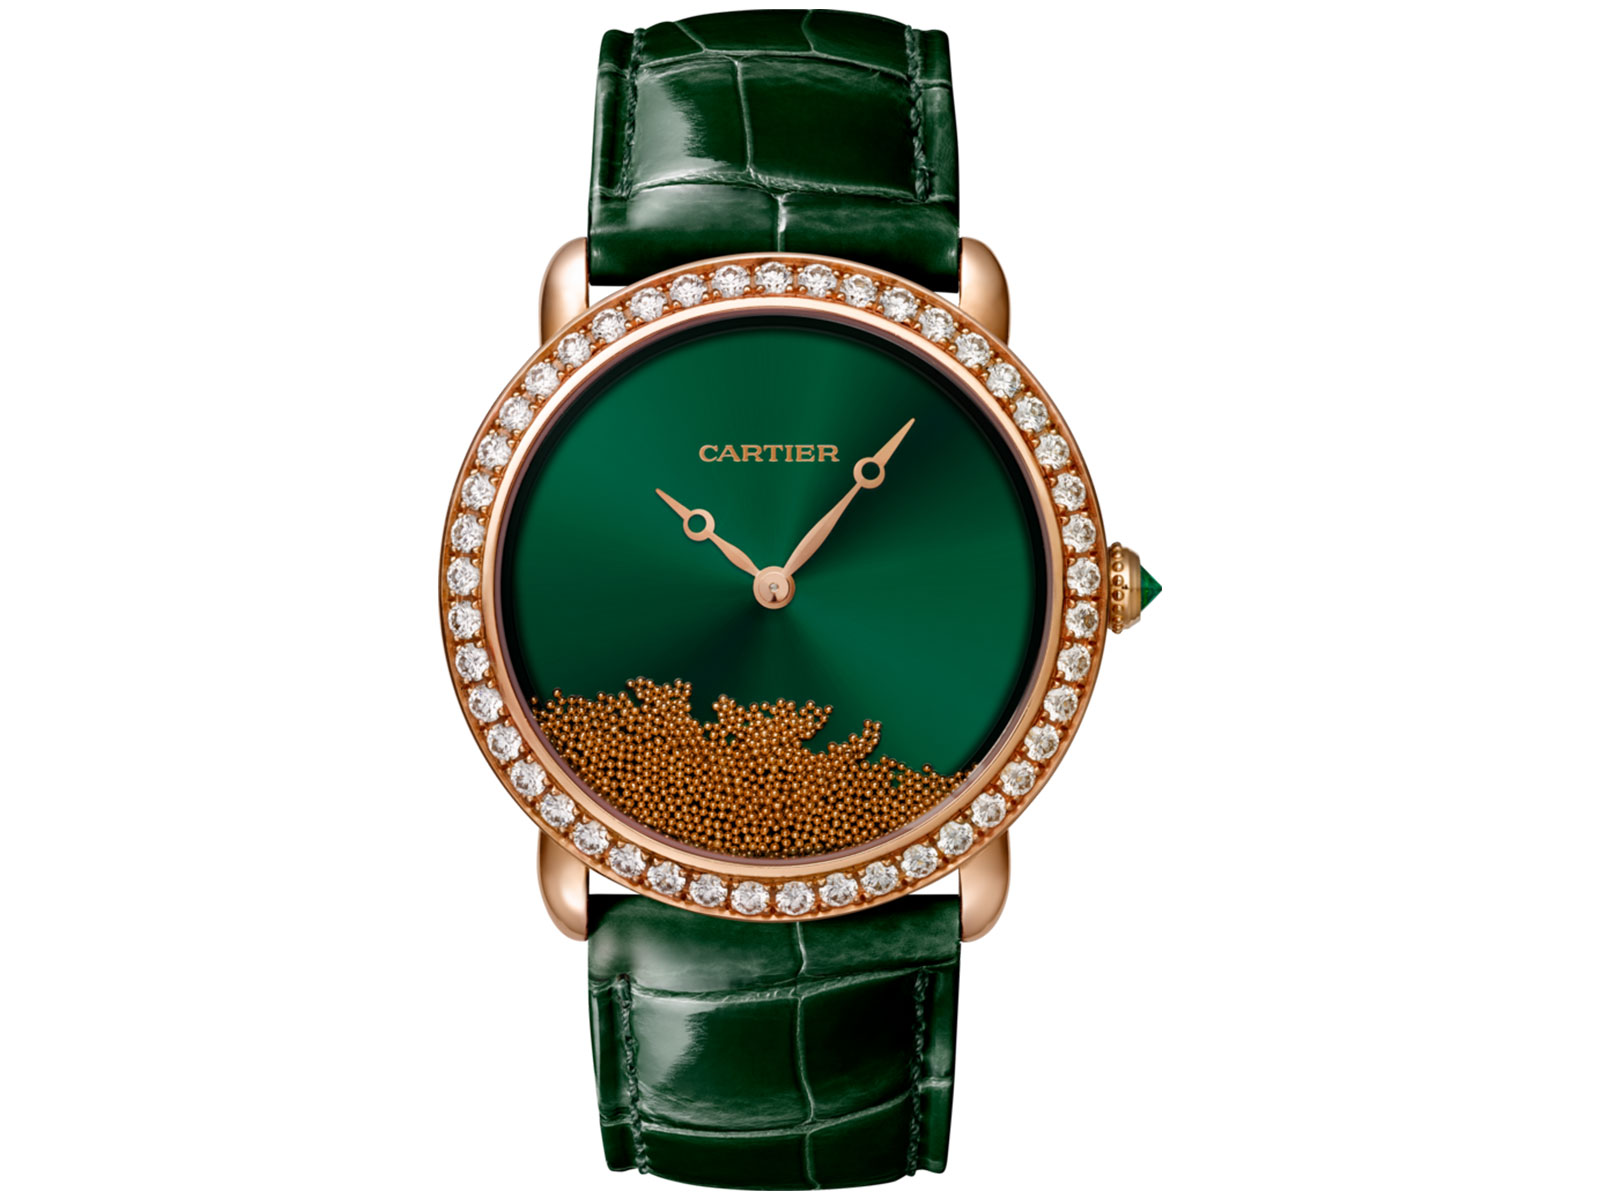 HP-01261-Cartier-Panthere-Collection-Sihh2018-Green-3.jpg